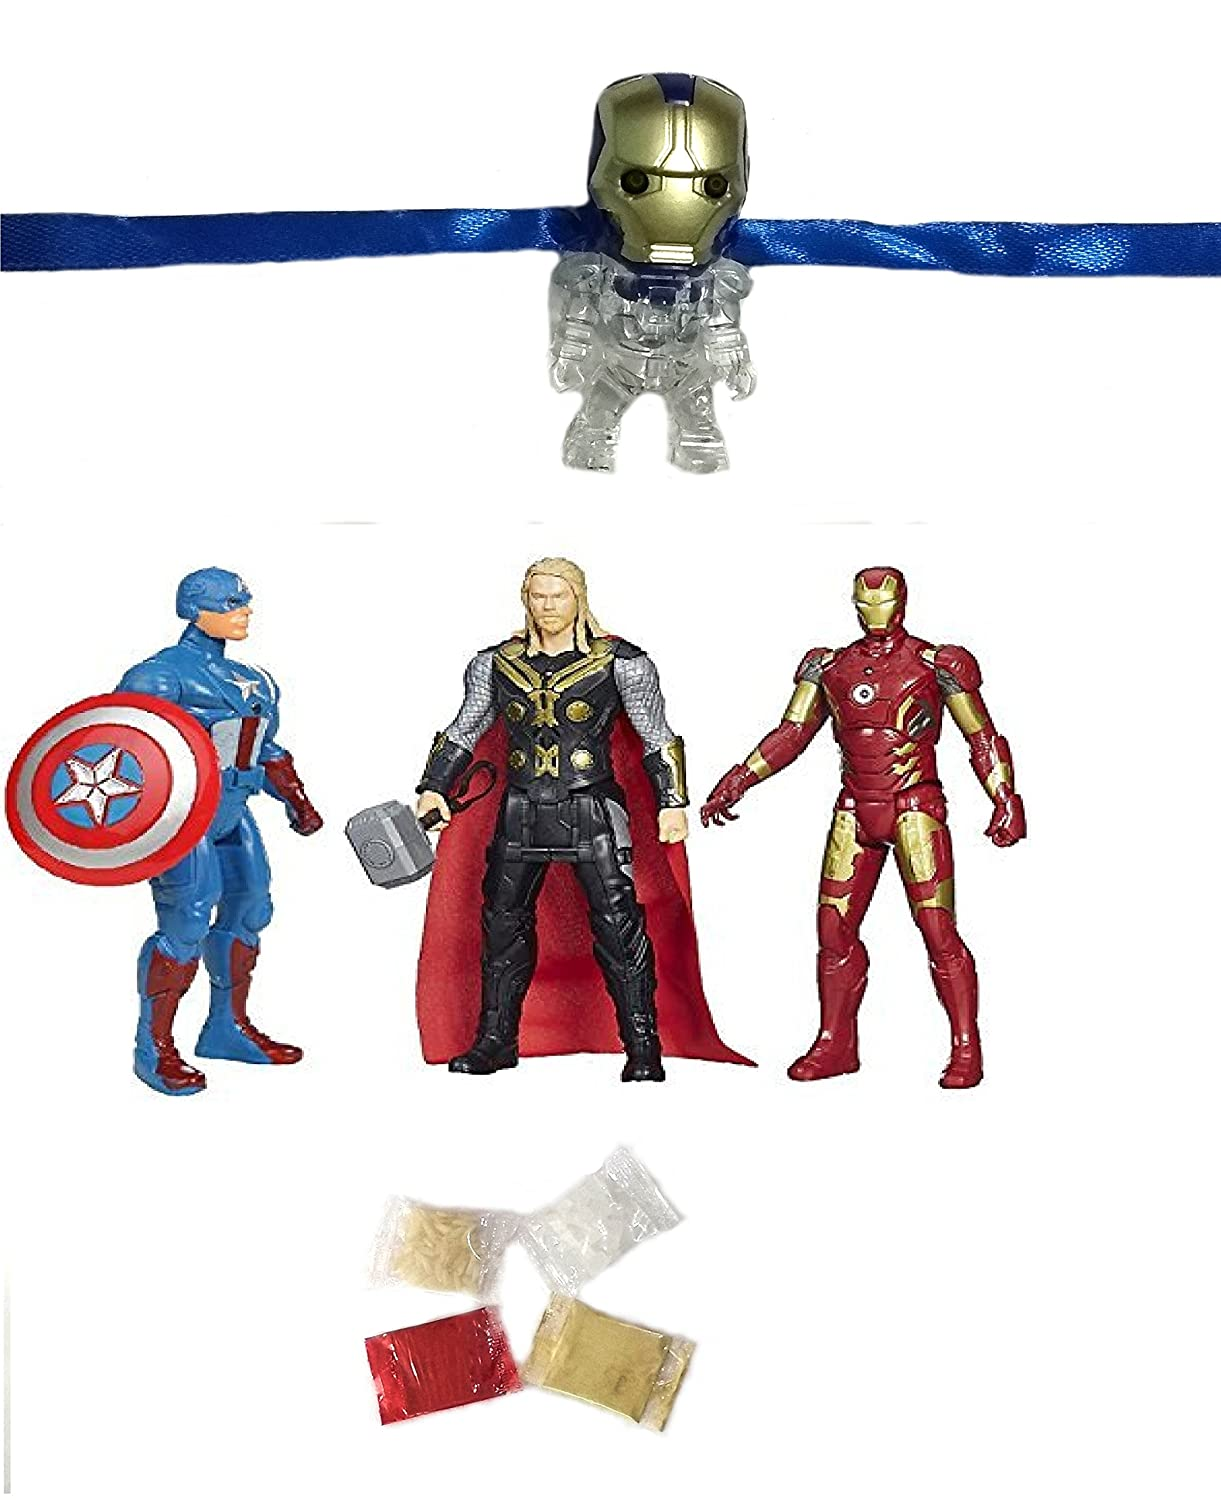 Velour Gifts Kid S Cartoon Iron Man Rakhi For Brother With Avengers Captain America Ironman And Thor Character Toy Roli Chawal And Personal Message Combo Amazon In Grocery Gourmet Foods